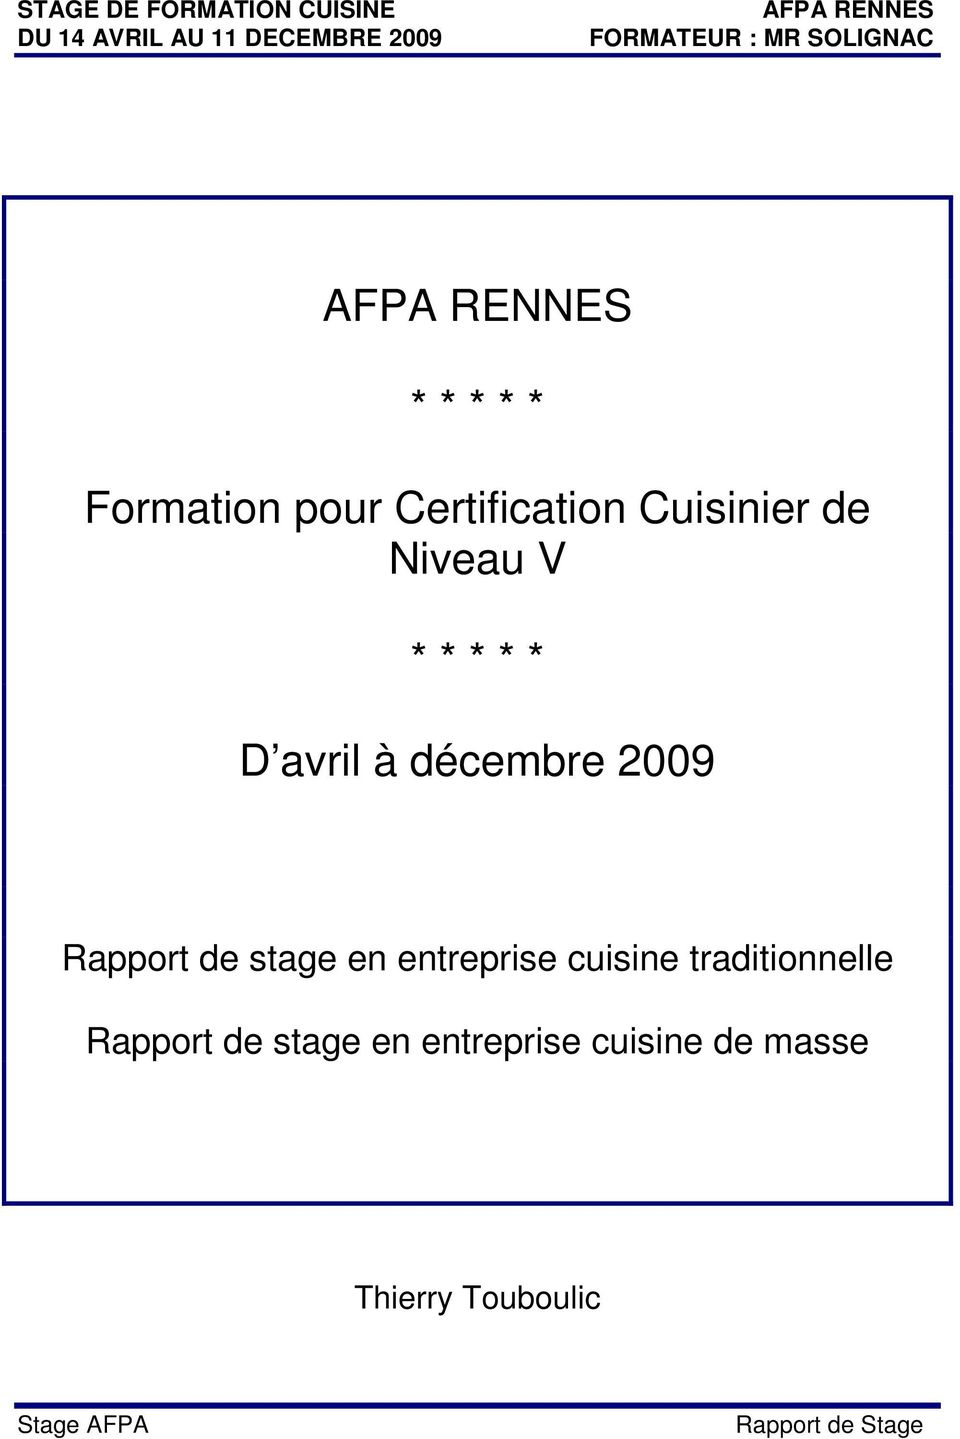 Afpa rennes formation pour certification for Afpa istres formation cuisine